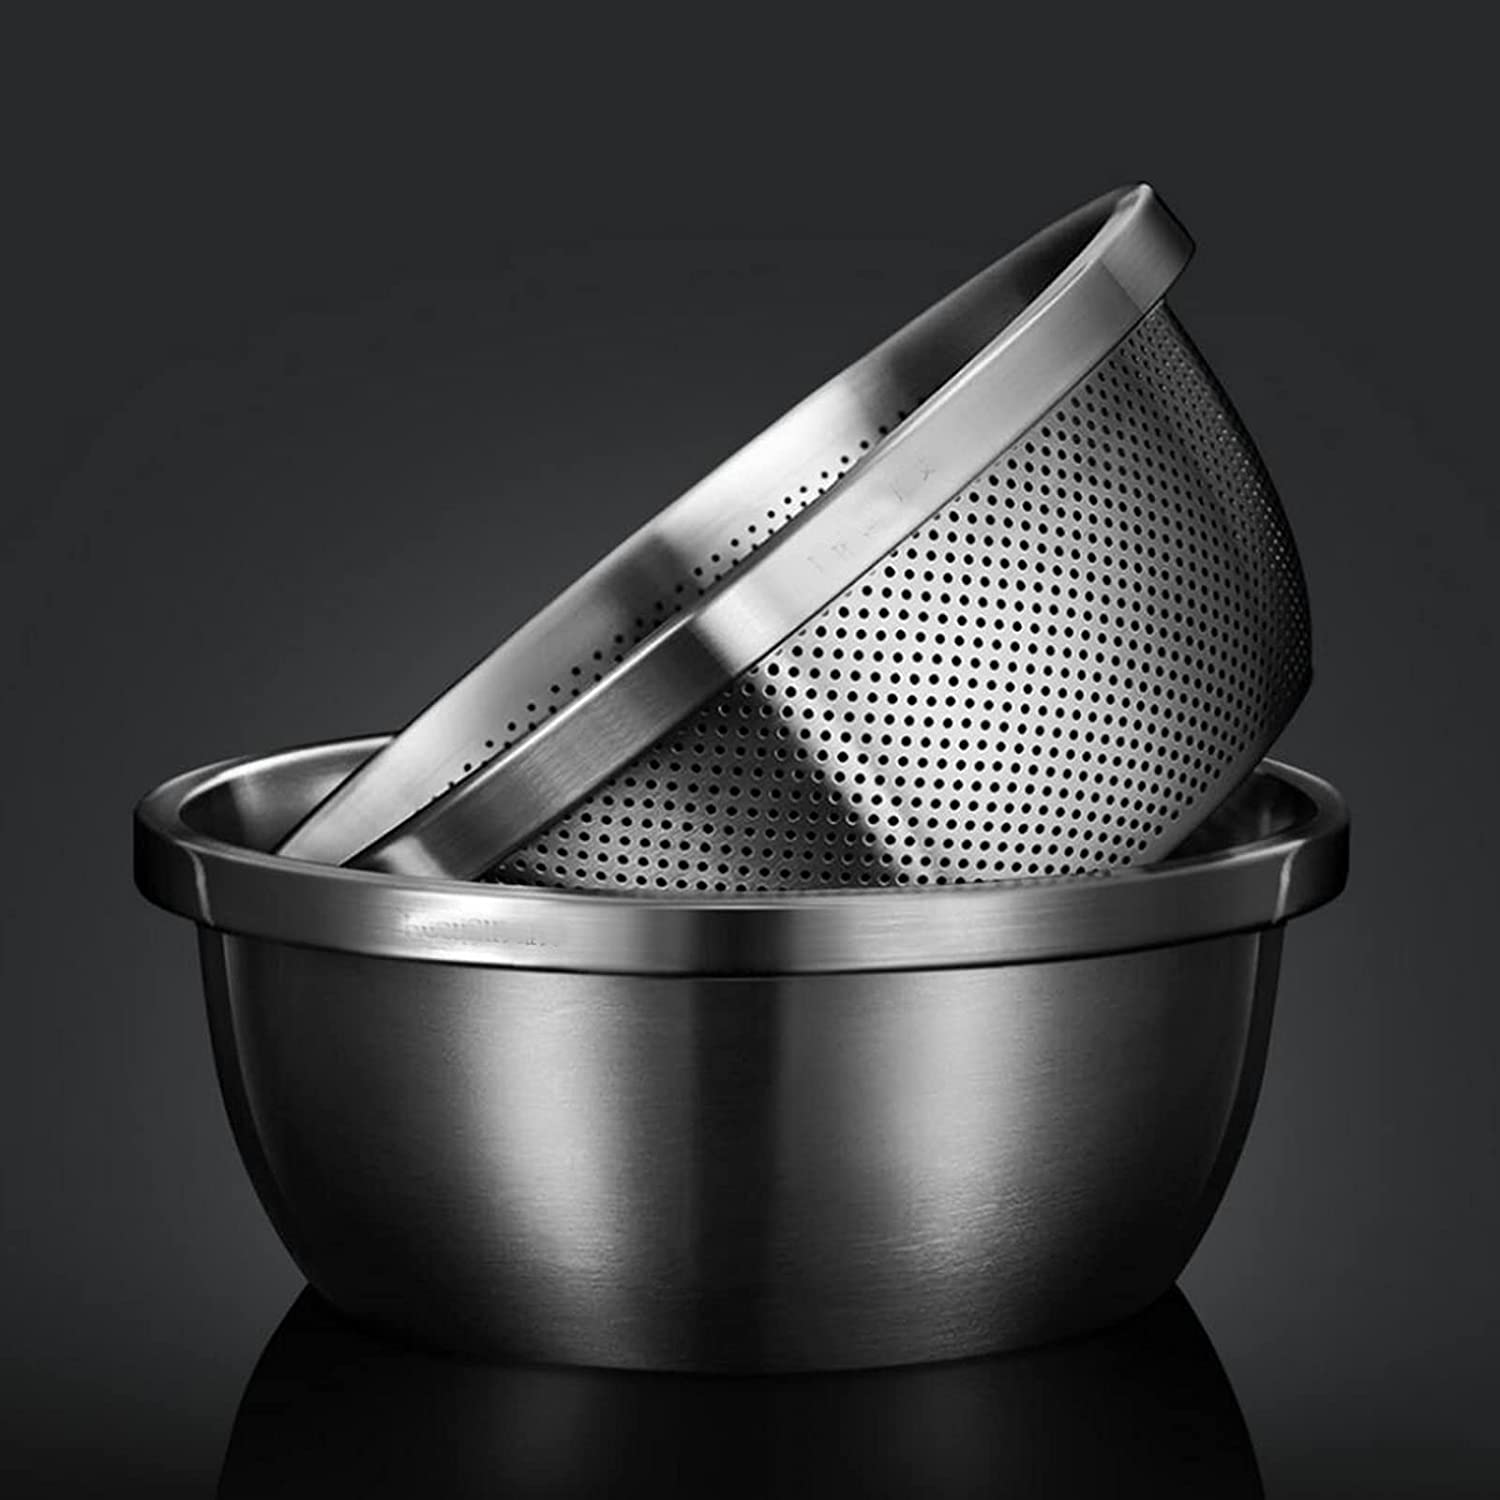 Cajolg 2 Pieces Sacramento Mall Colander Strainer Container Jacksonville Mall Stainless with Steel